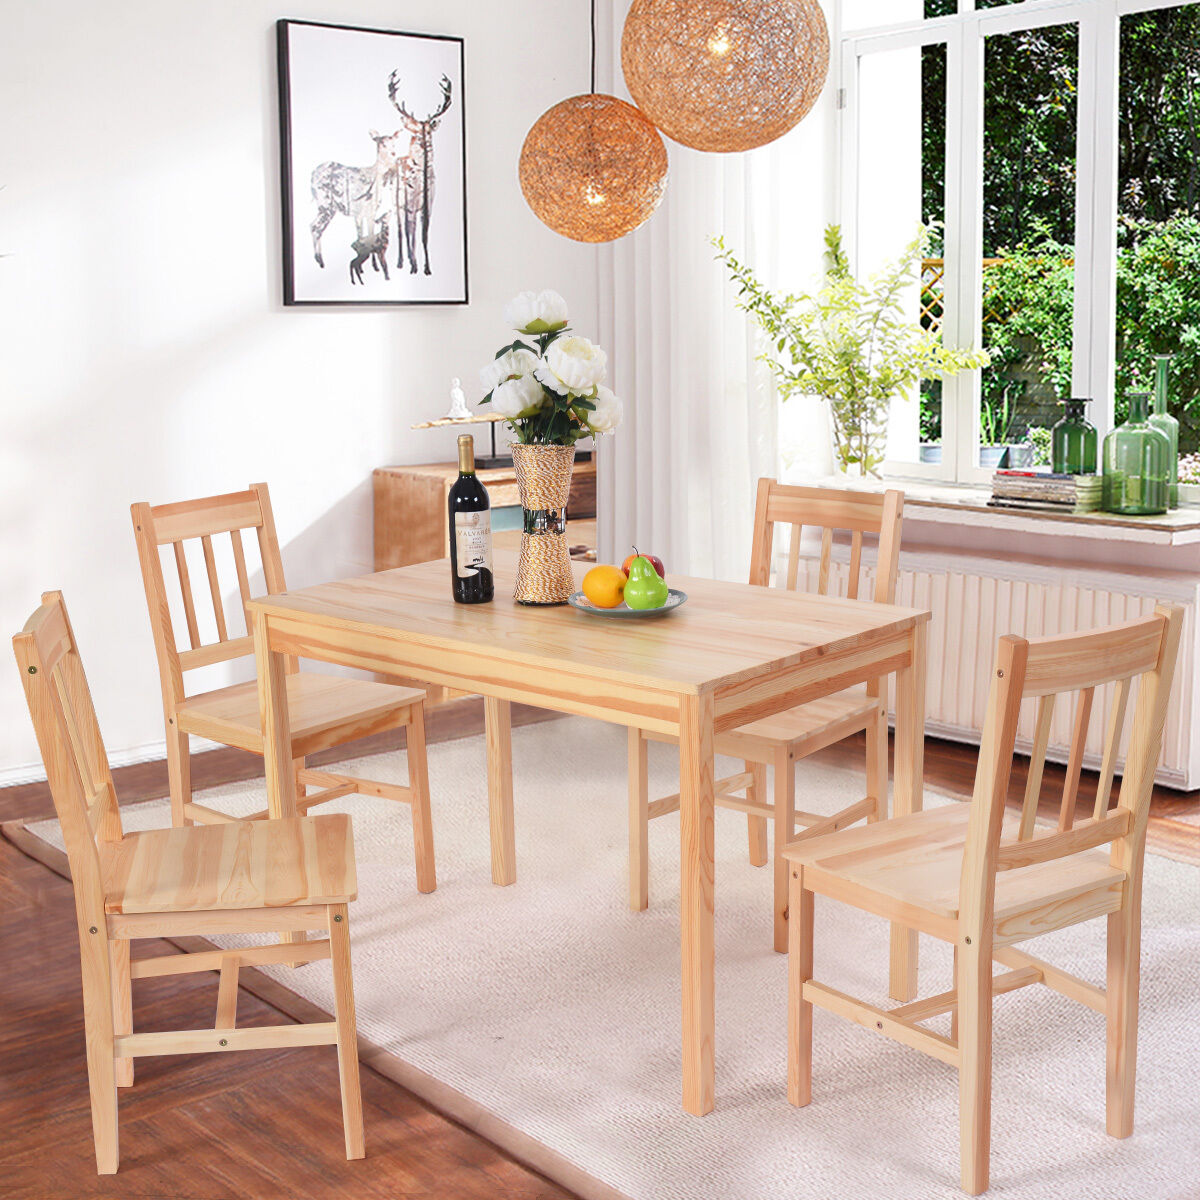 solid wood kitchen chairs wedding chair cover hire milton keynes wooden pine dining table and 4 set